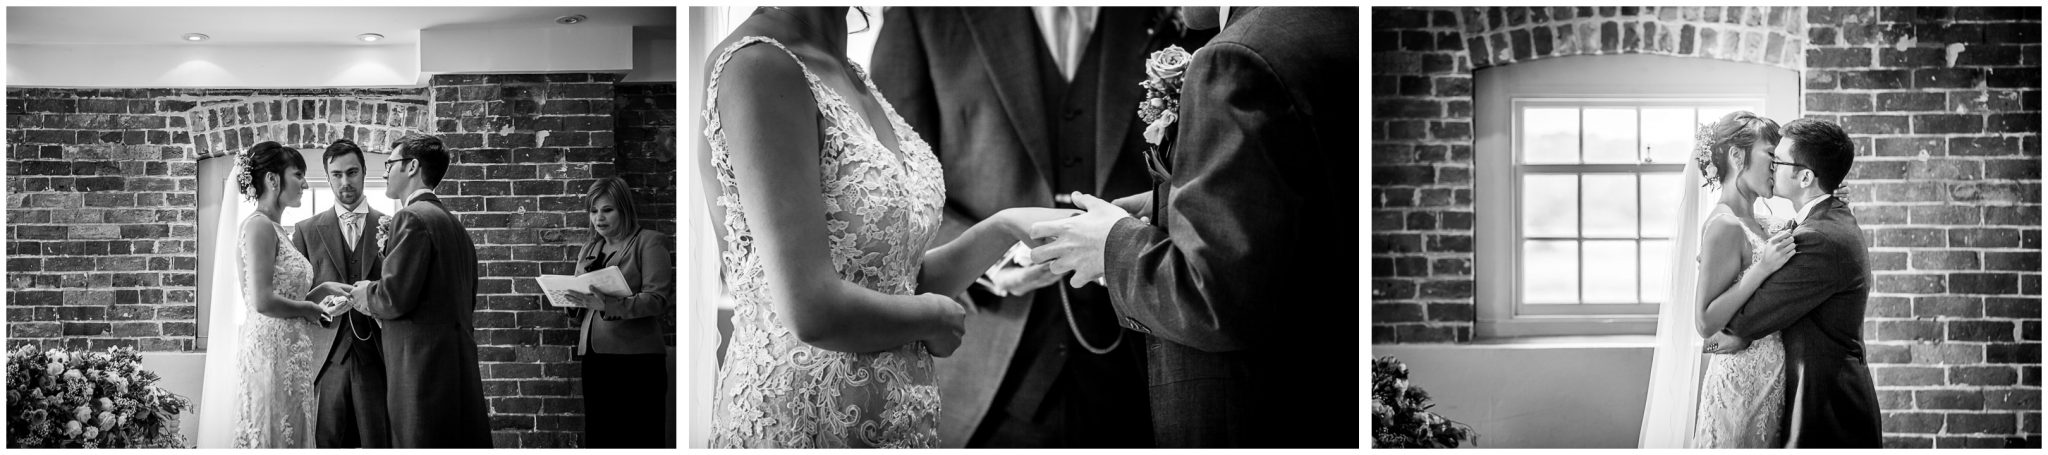 Sopley Mill wedding photography vows, exchange of rings and kiss in black and white